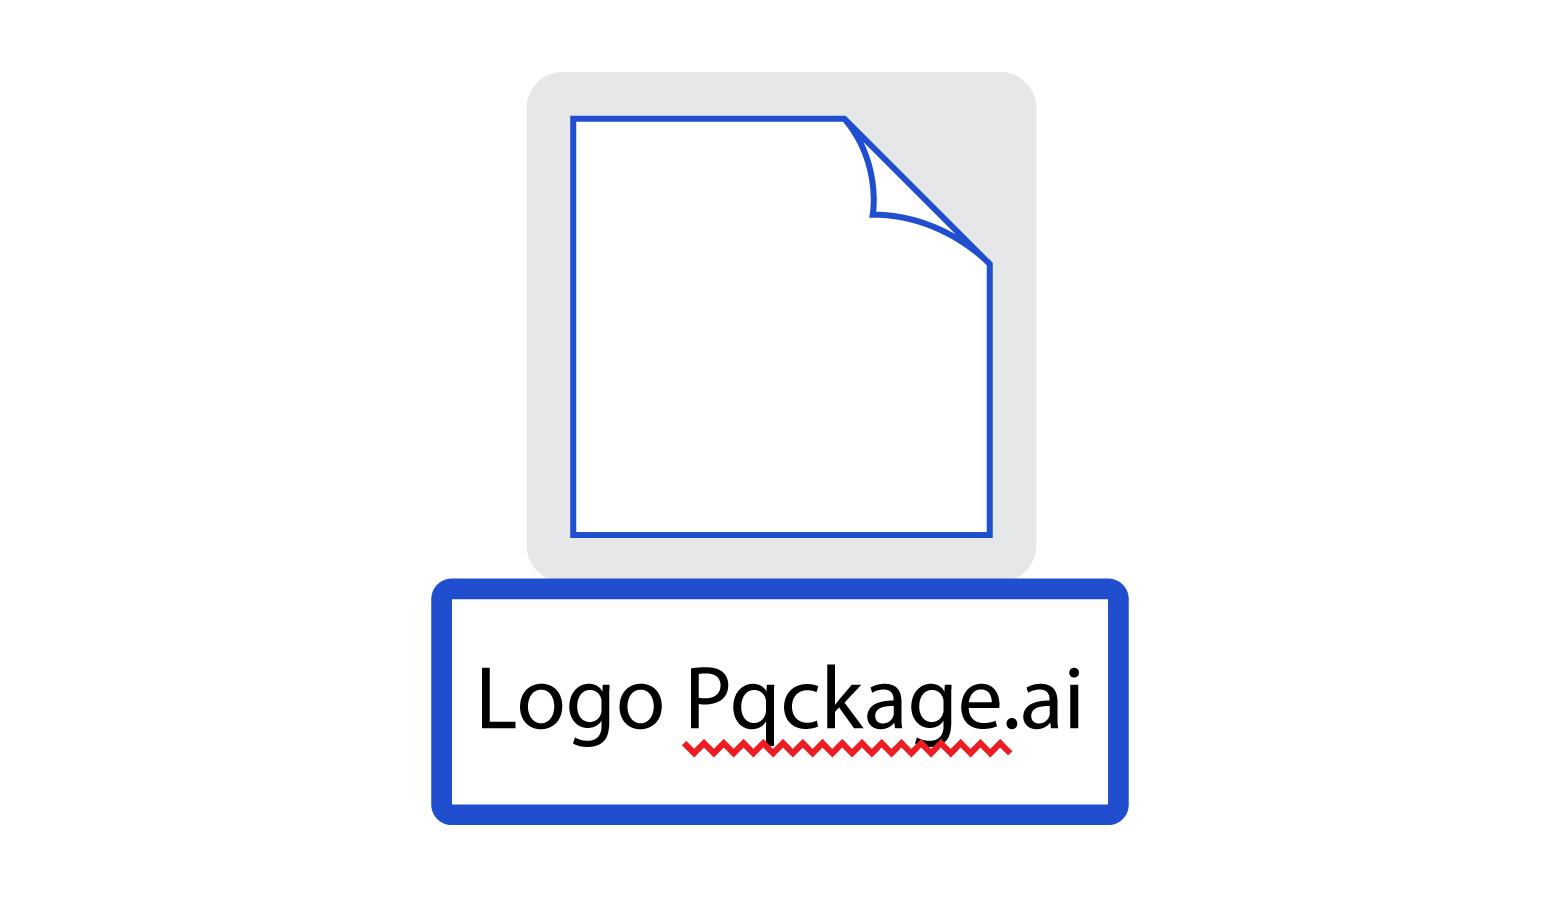 Illustrator logo design